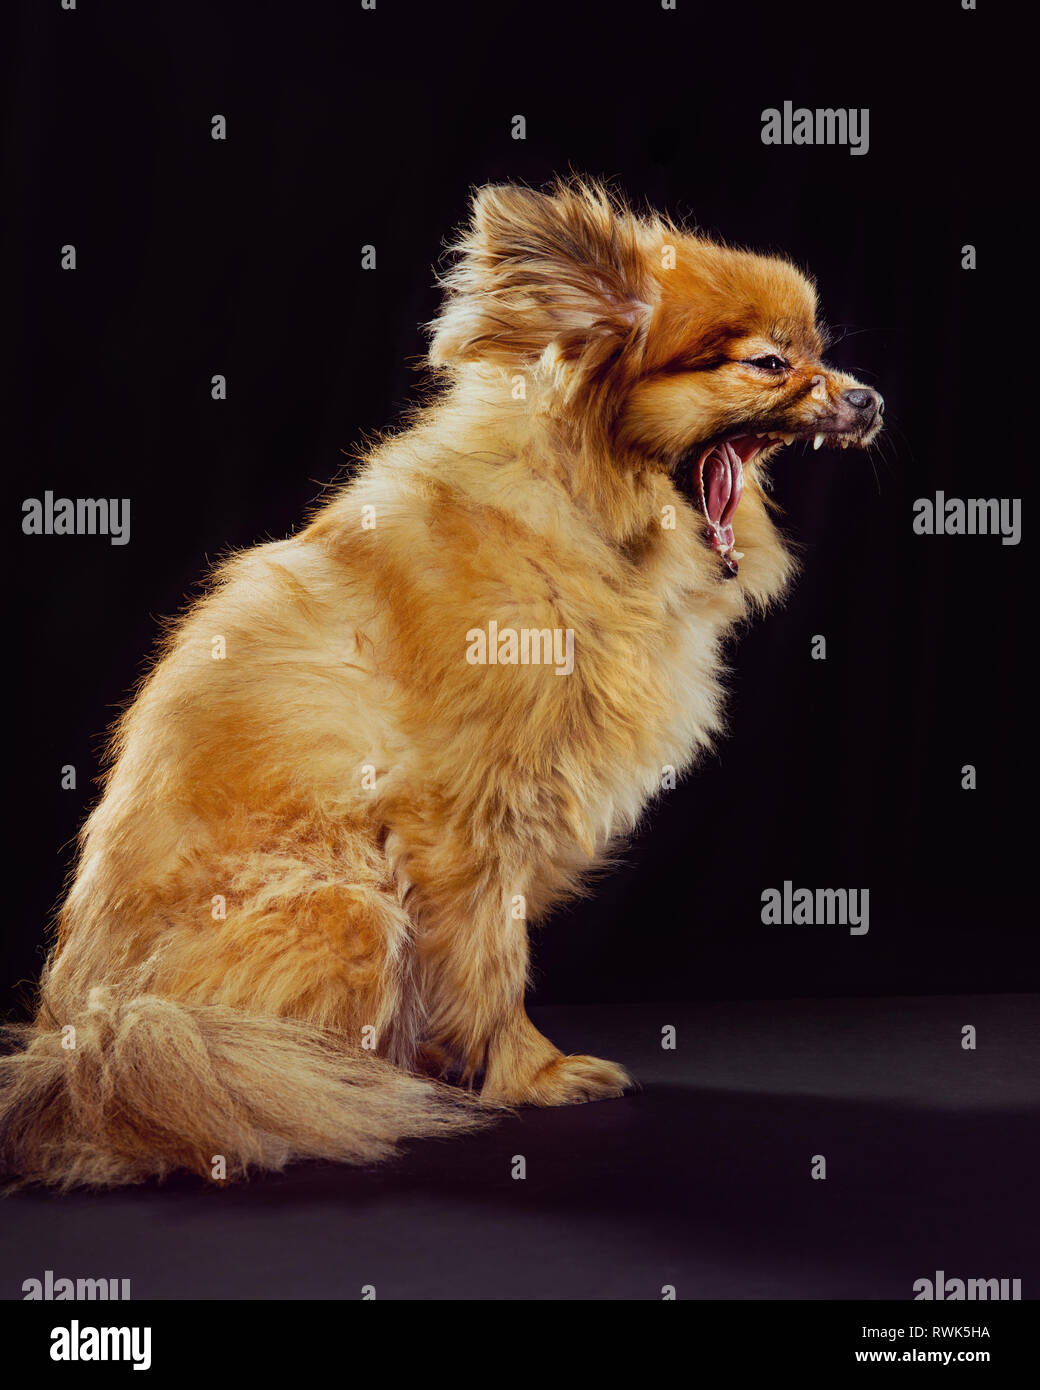 Profile of a pomeranian mix dog mouth wide open on a black background. - Stock Image